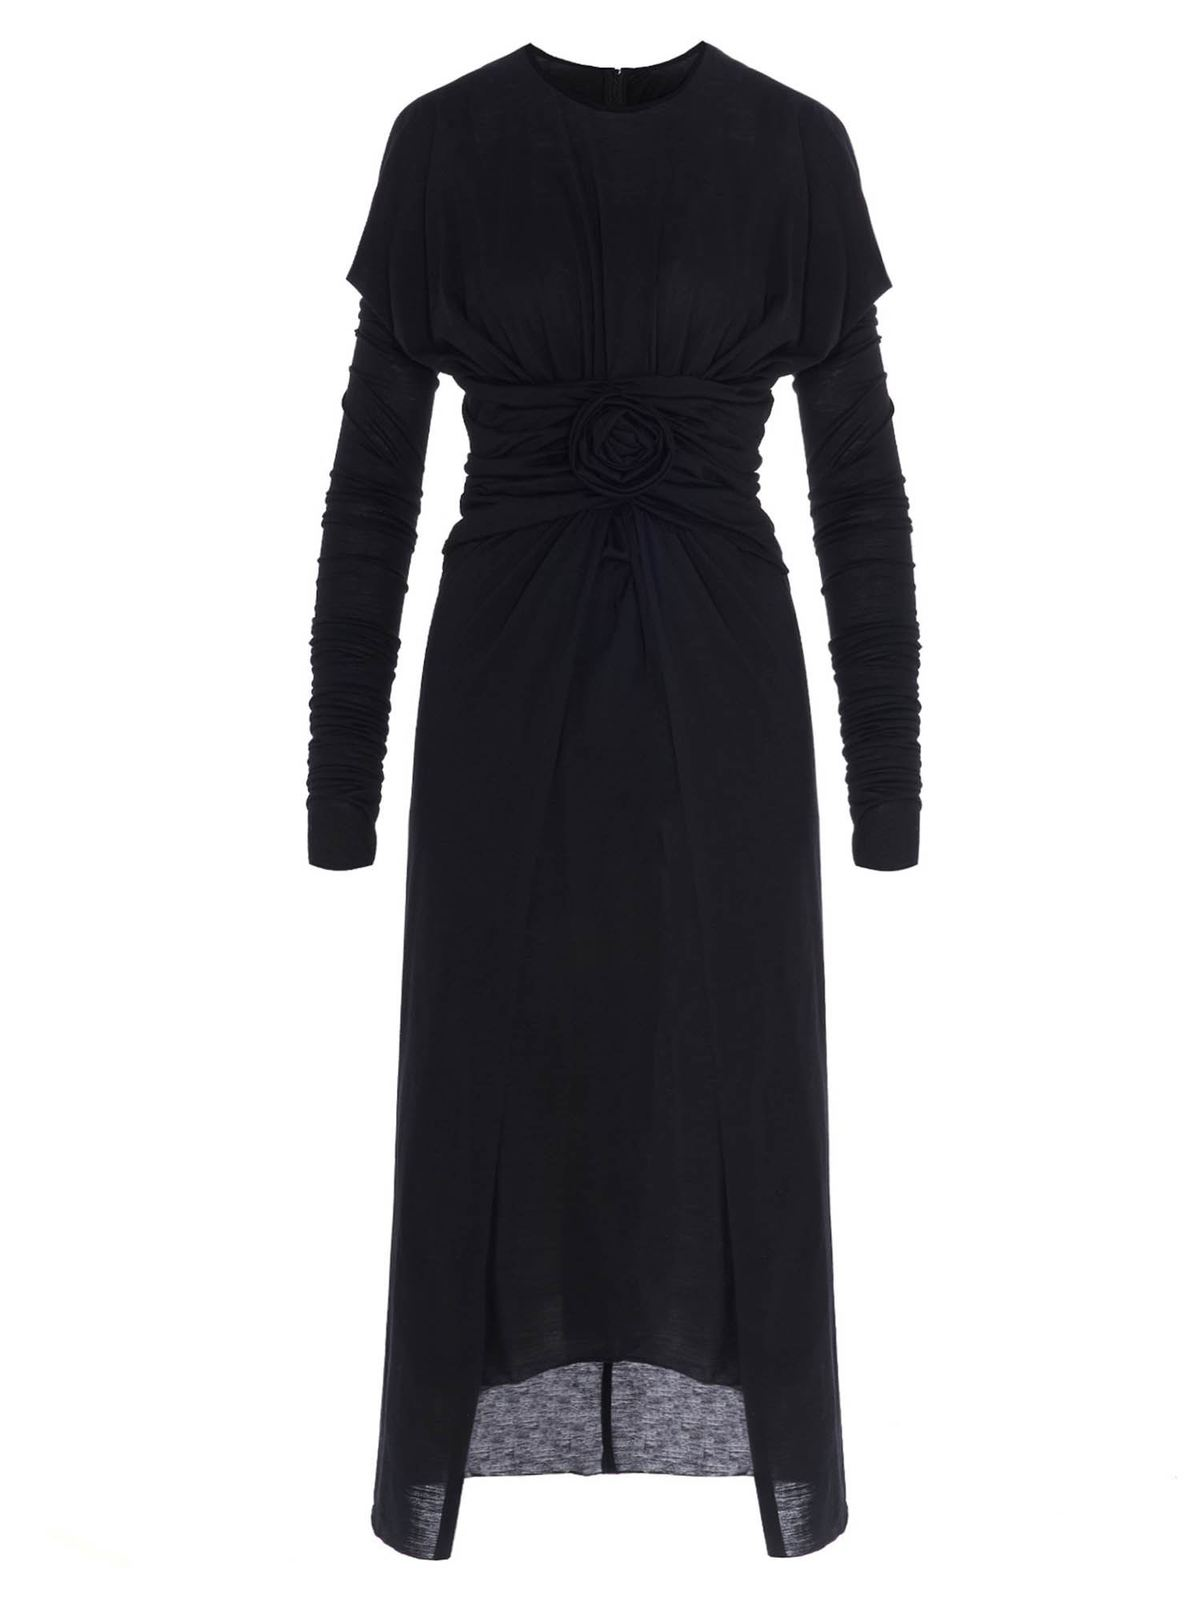 DOLCE & GABBANA DRAPED DRESS WITH ROSE IN BLACK